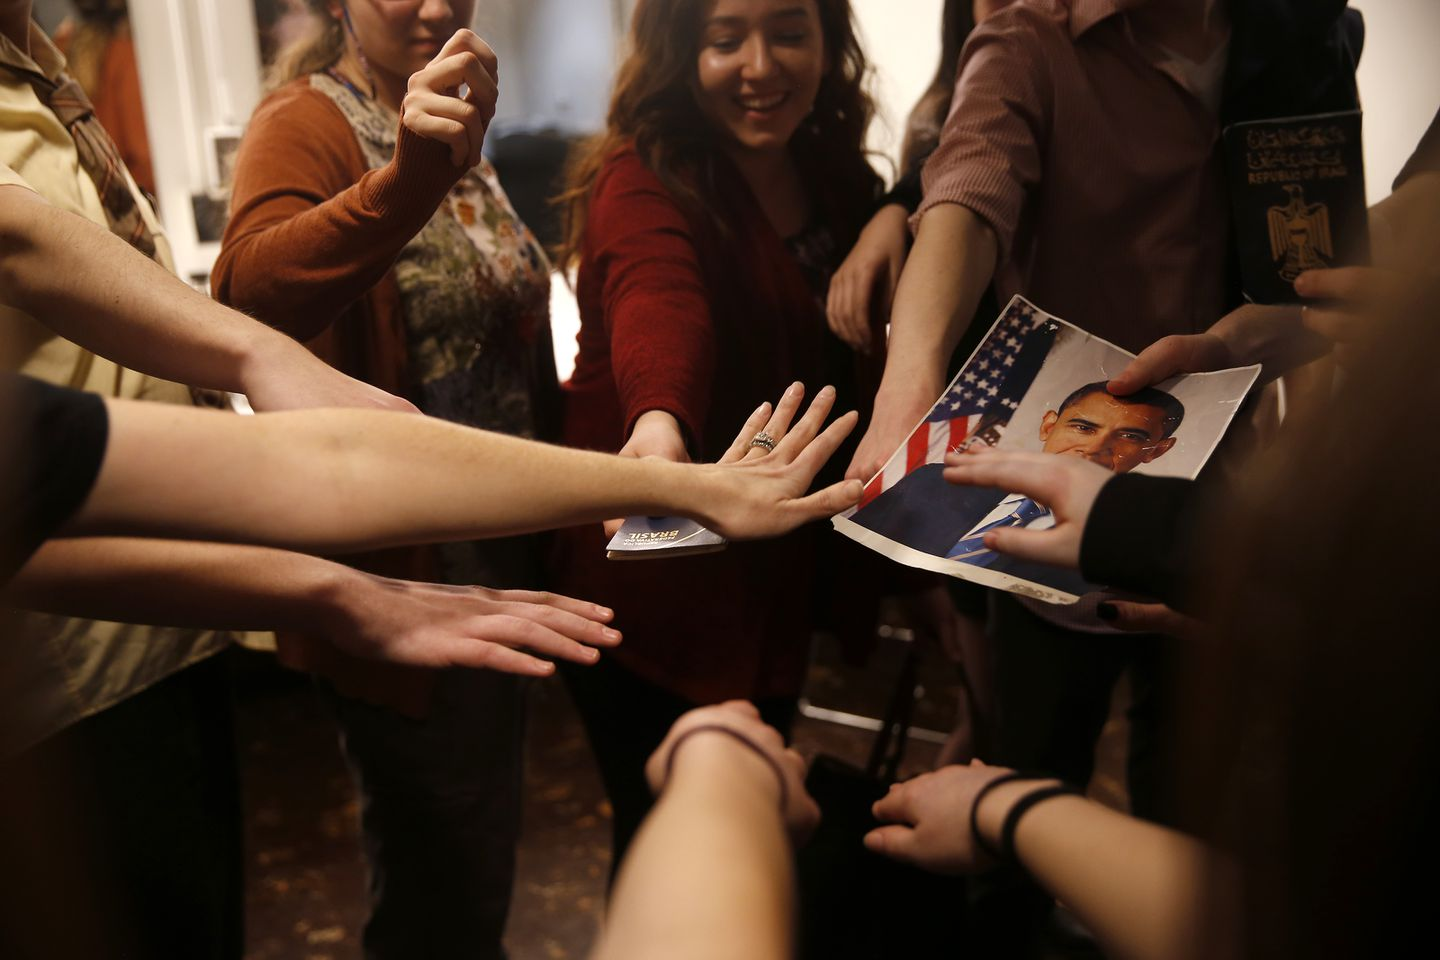 As the actors gathered into a tight circle before their final performance, Deb thrust out her hand with her Brazilian passport in it.